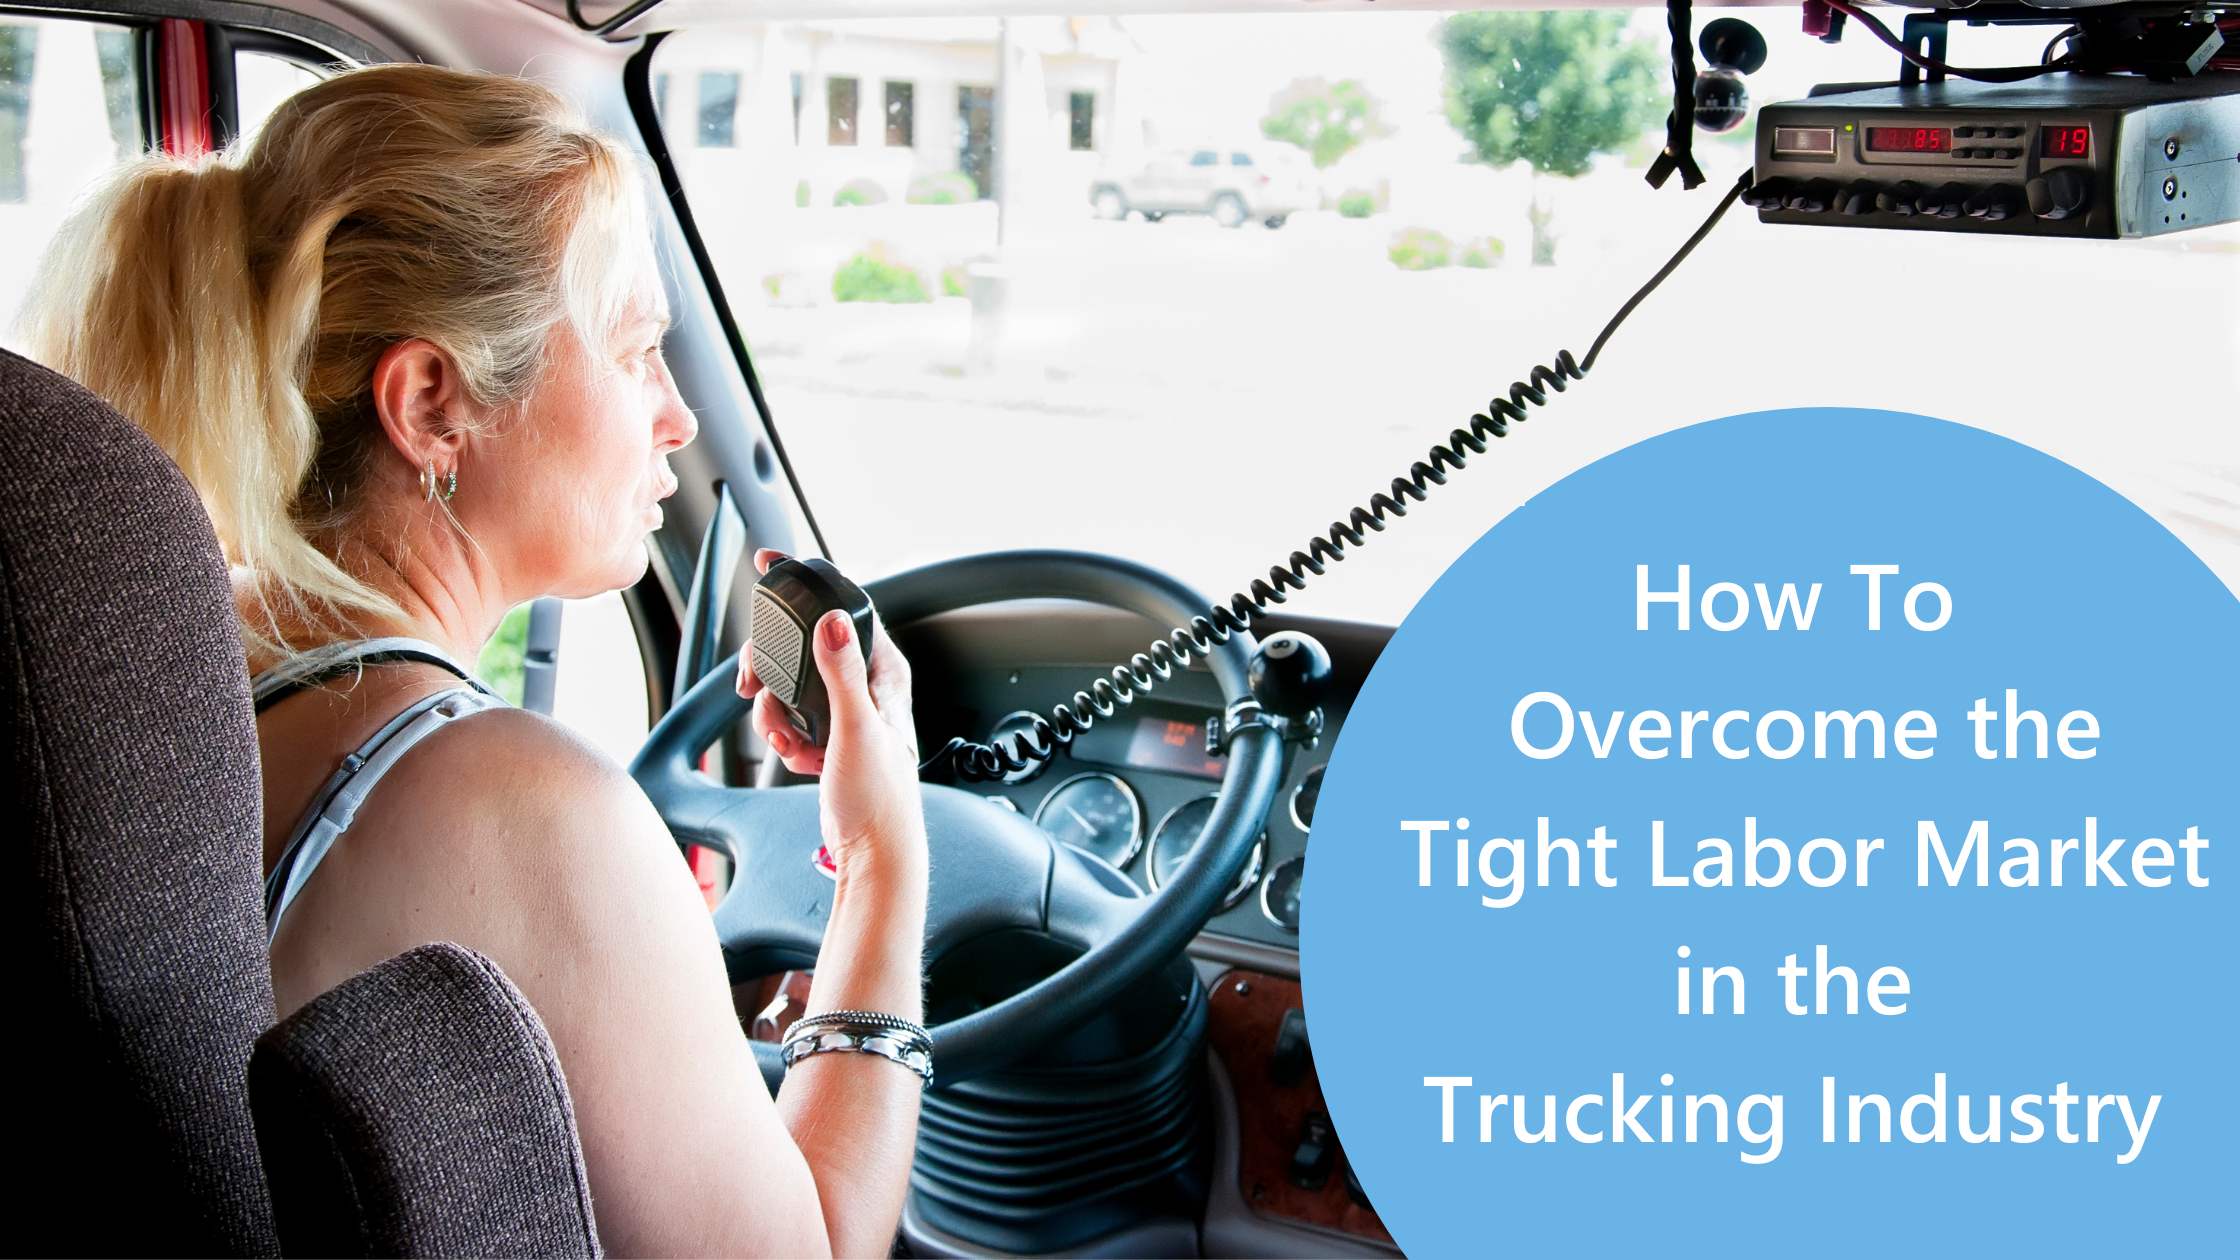 how-to-overcome-the-tight-labor-market-in-the-trucking-industry-text-on-image-female-truck-driver-in-truck-driving-using-cb